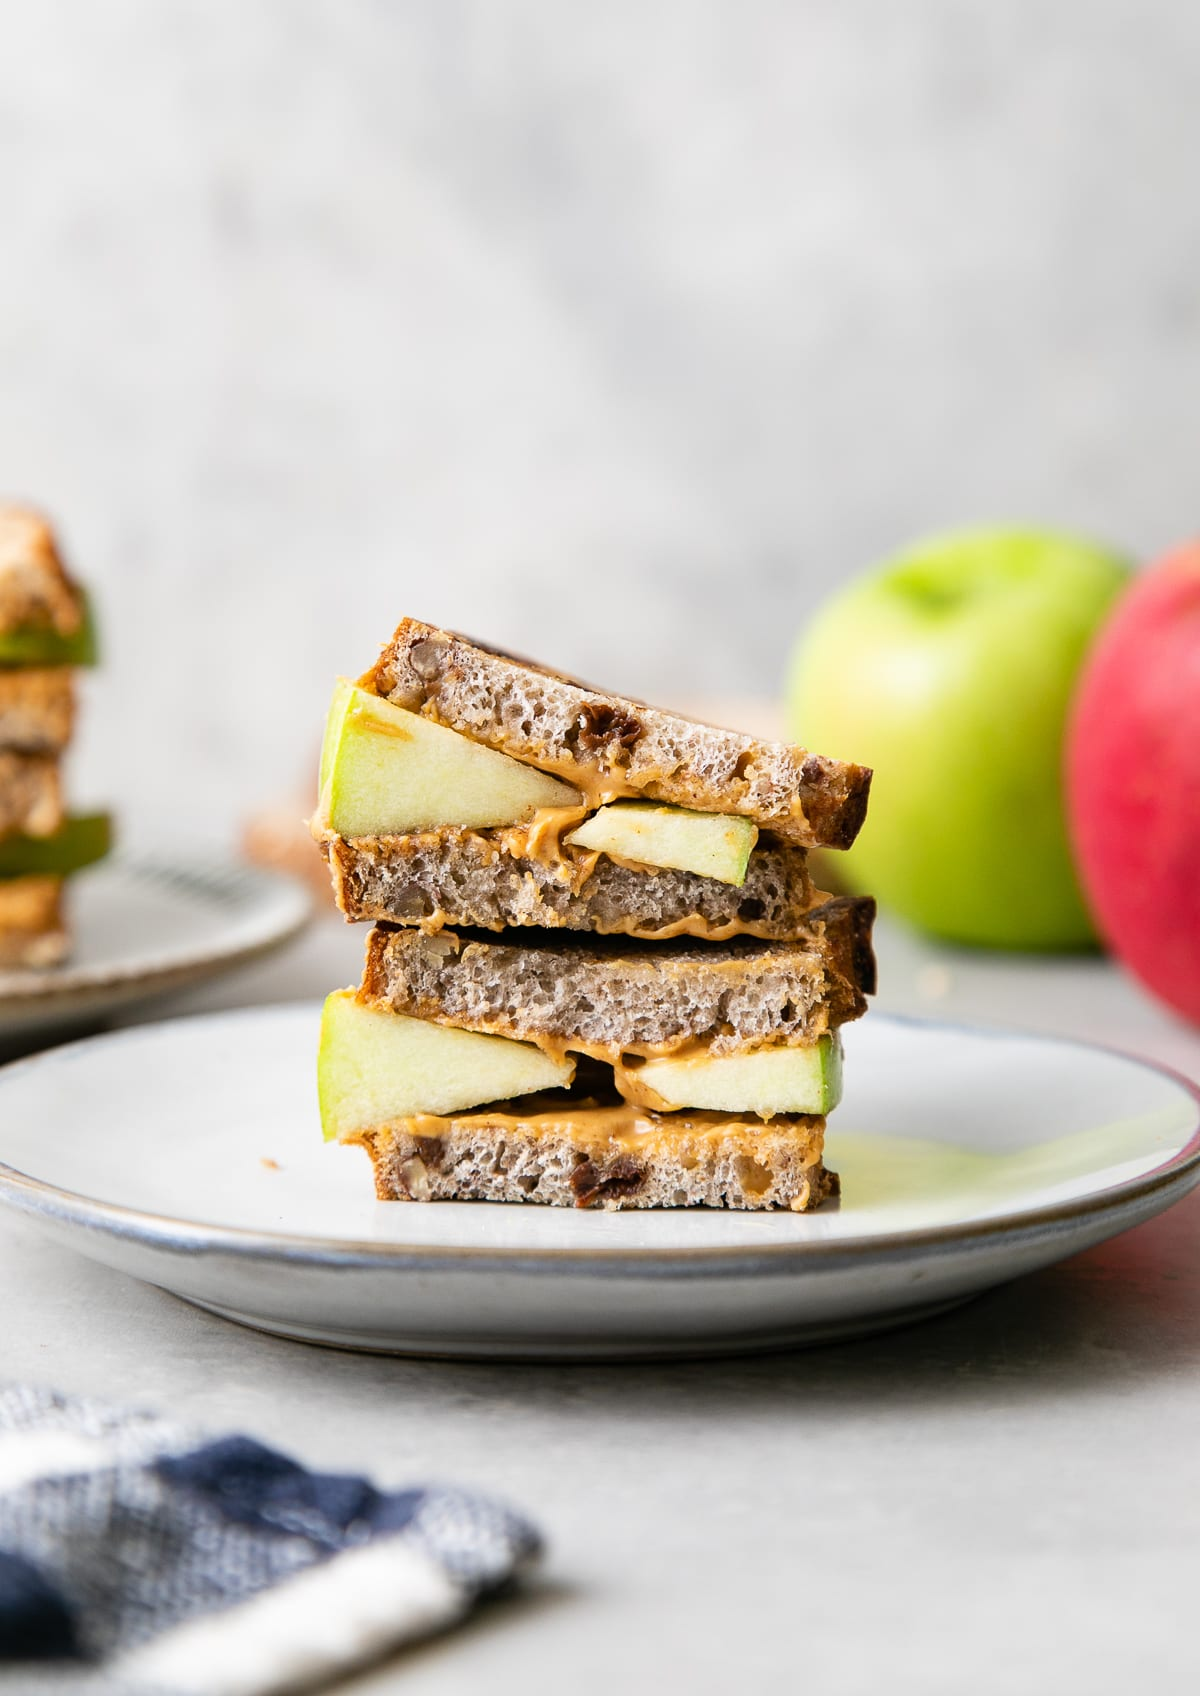 head on view of grilled peanut butter apple sandwich on a plate with items surrounding.